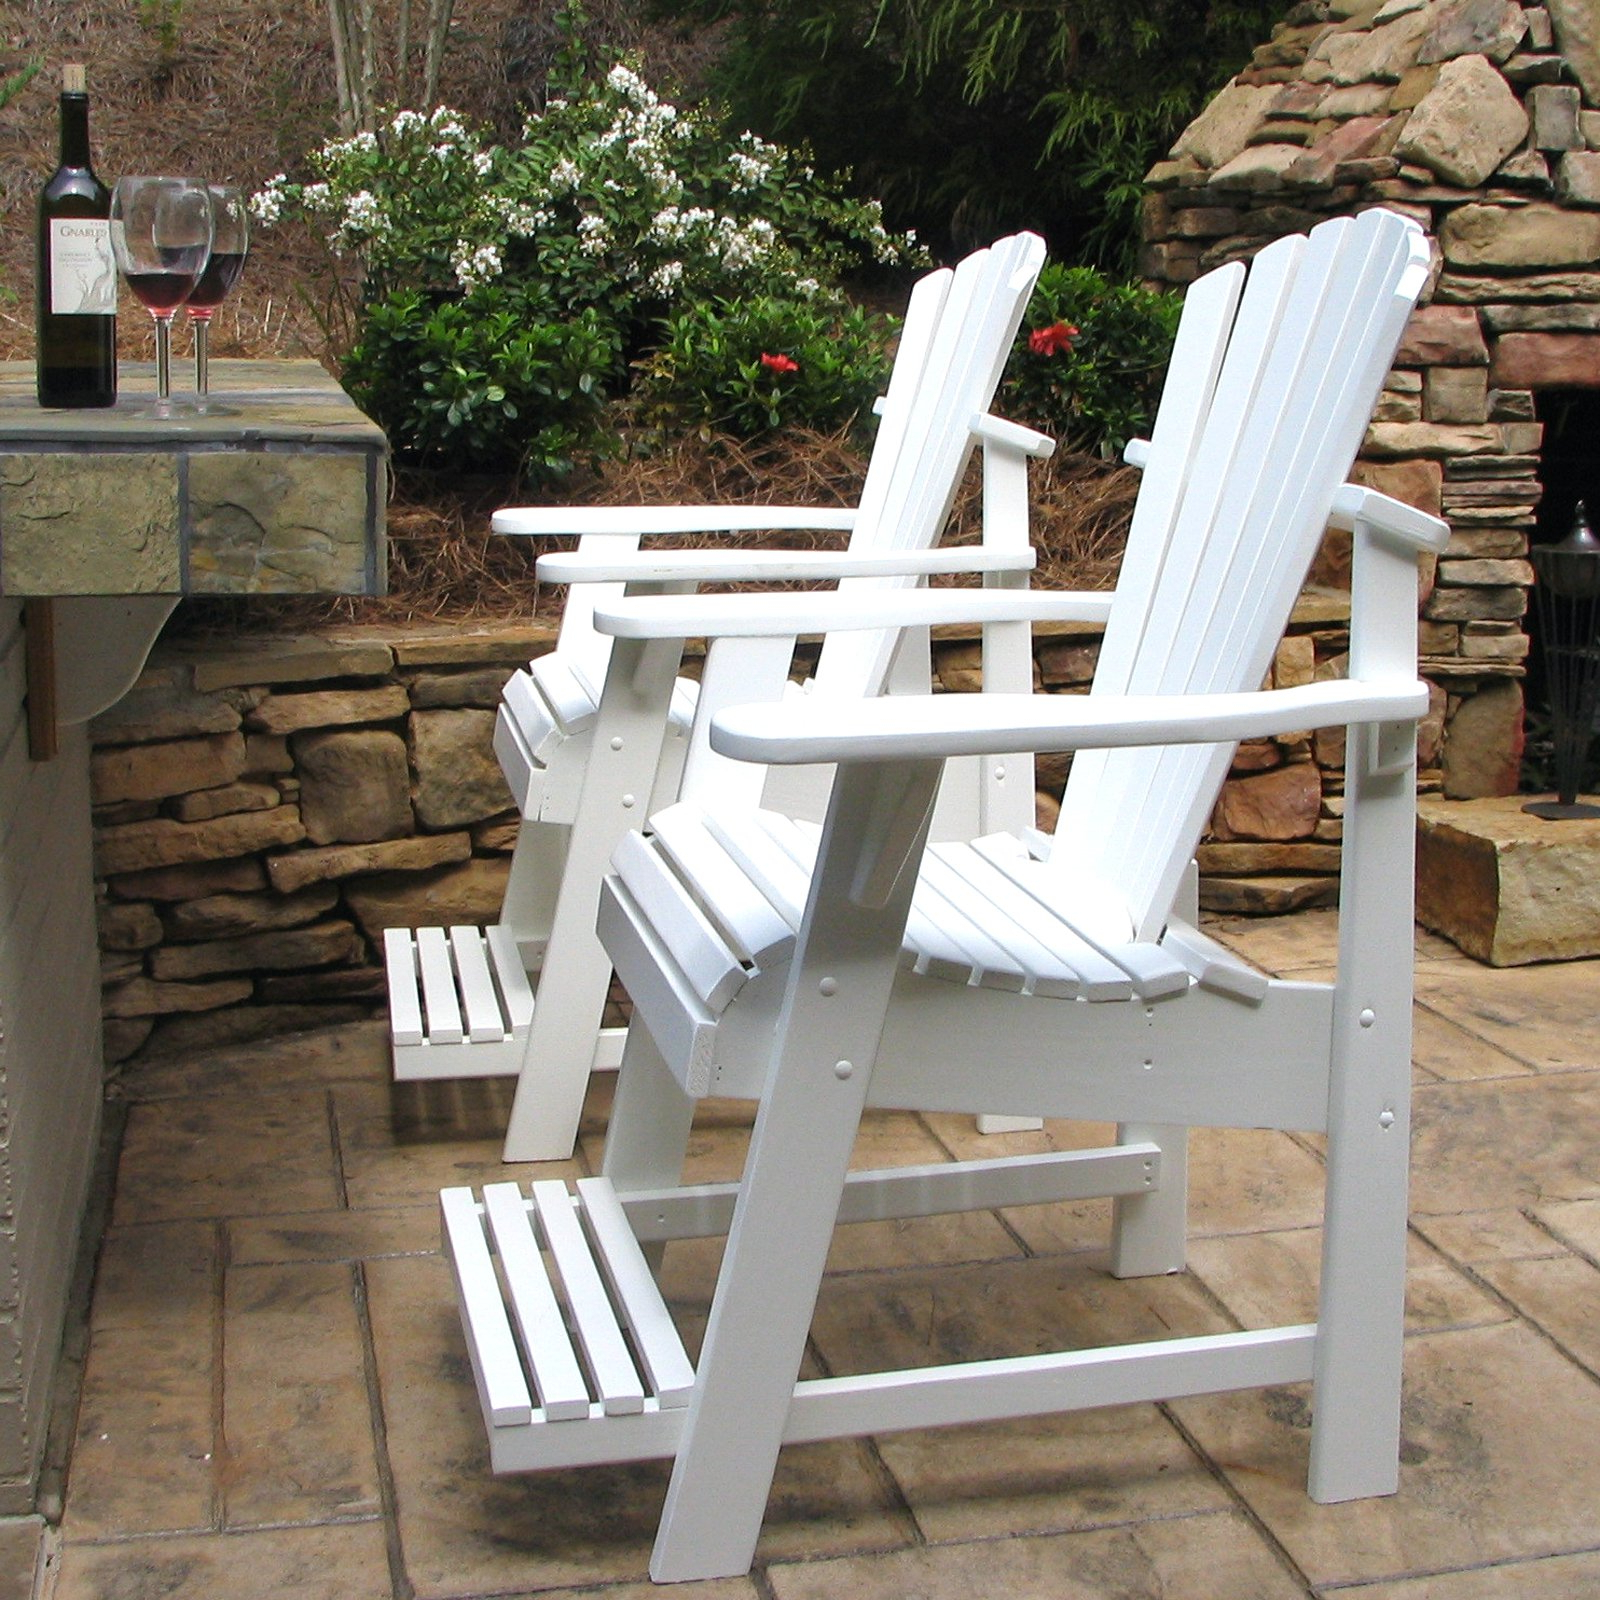 Preferred Weathercraft Designers Choice Painted Balcony Adirondack Chair With Footrest For Adirondack Chairs With Footrest (View 22 of 25)